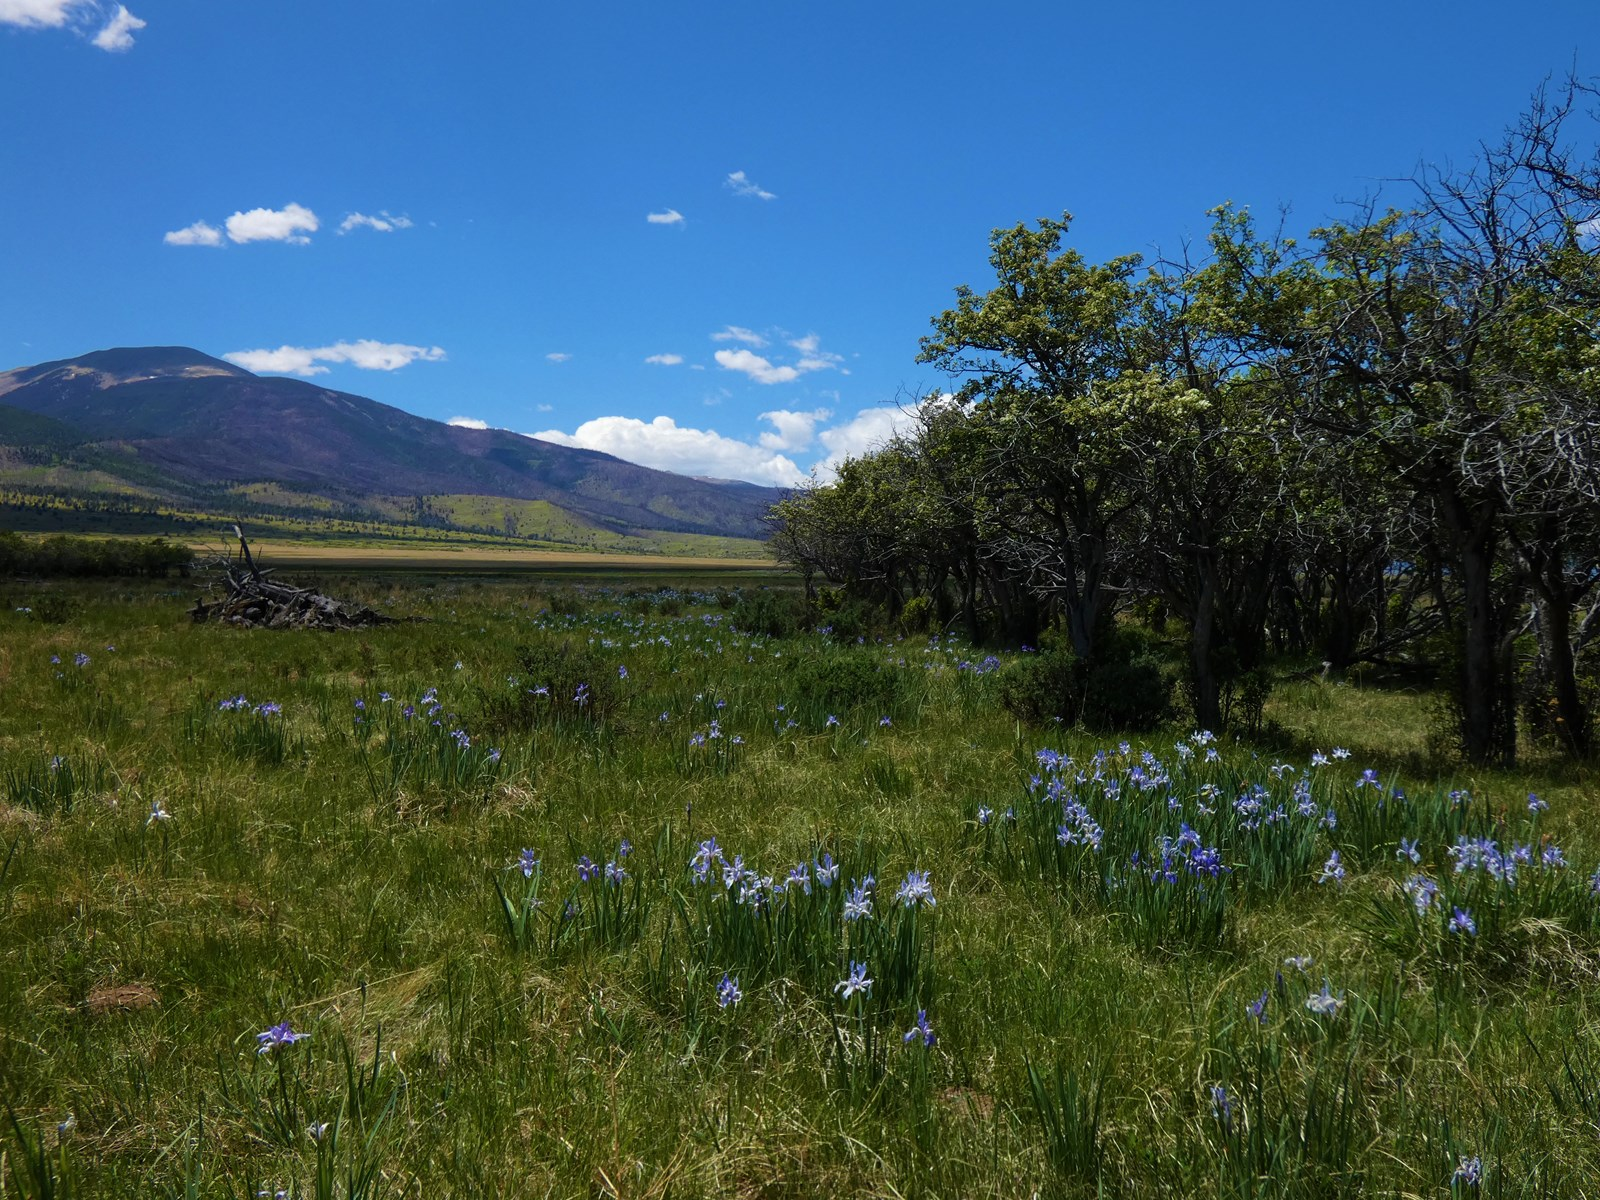 Springtime at Maytag Mountain Ranch